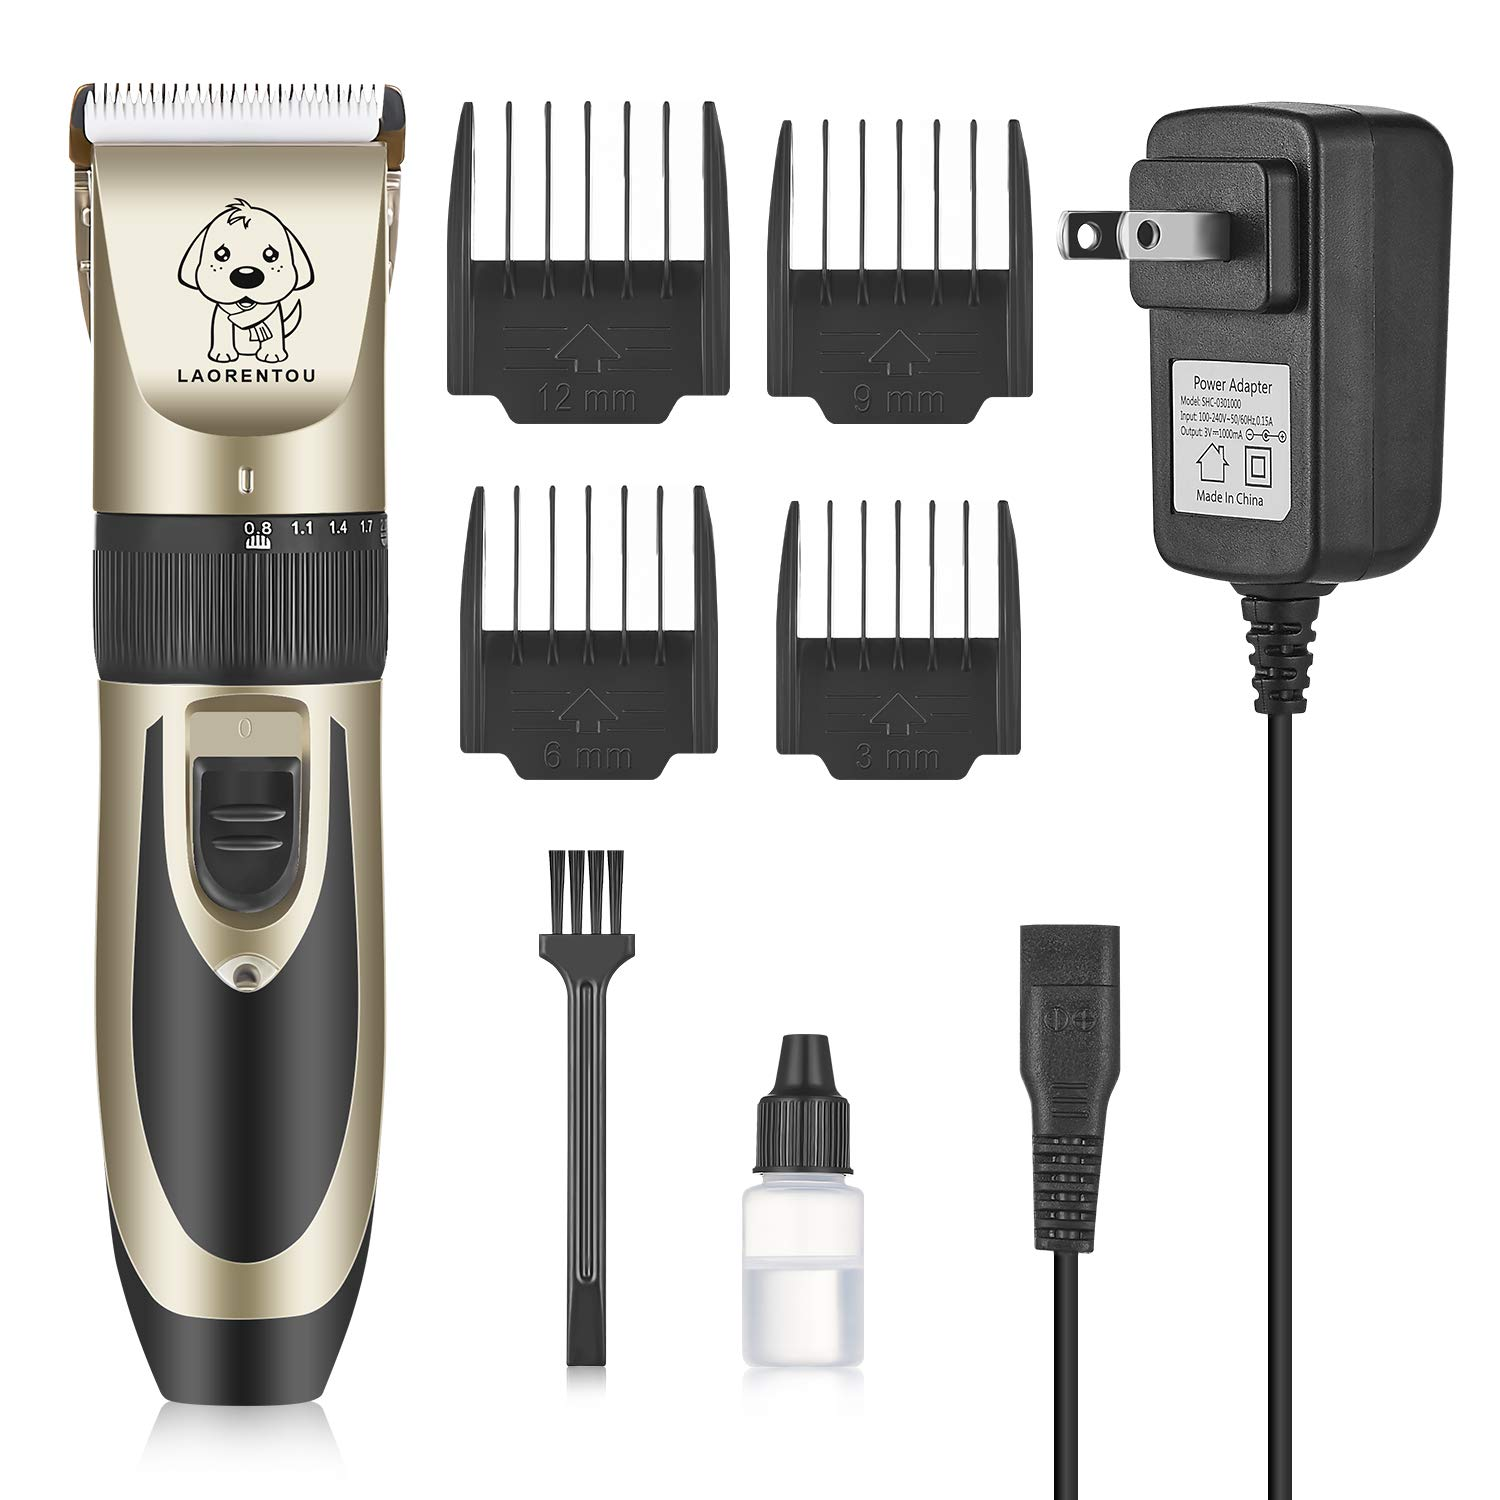 Pet Clippers-Professional Electric Pet Hair Shaver with 4 Guard Combs ,Cordless & Rechargeable, Dual Stainless Steel & Ceramic Blades, Cat & Dog Grooming, Trimming, Shaving, Clipping, Highly Portable